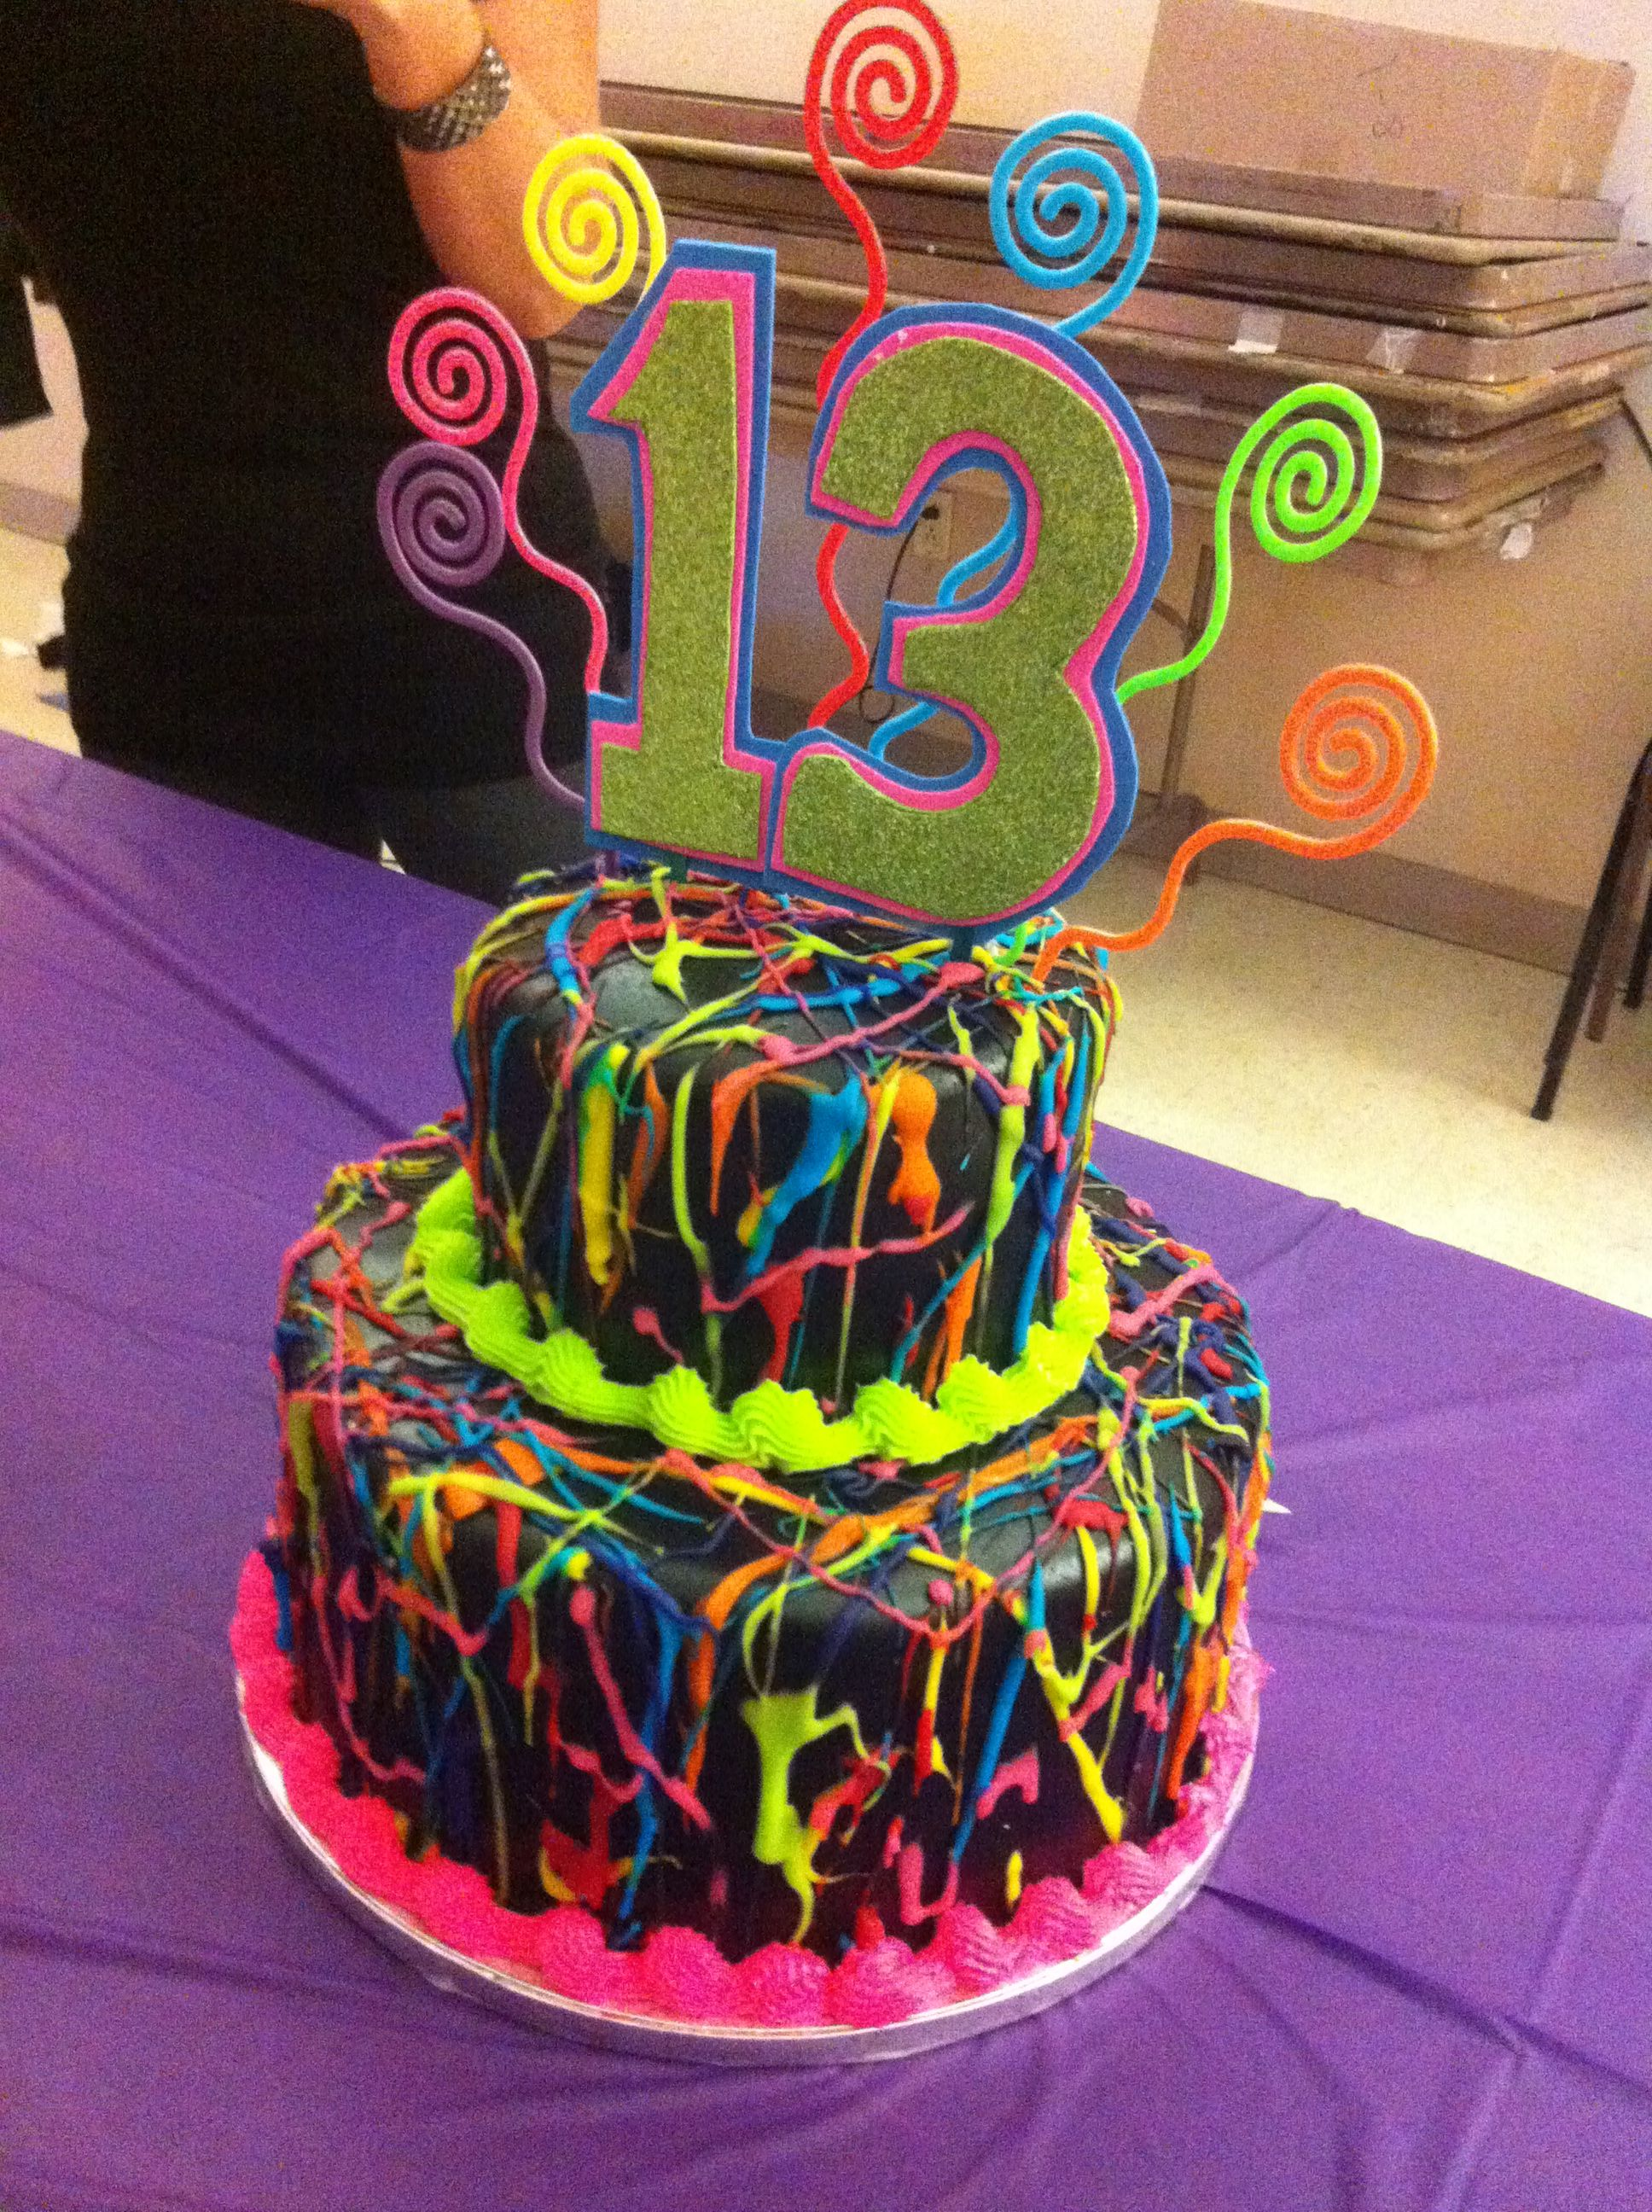 Awsome Cake For 13th Birthday I Love That Cake I Want To Go